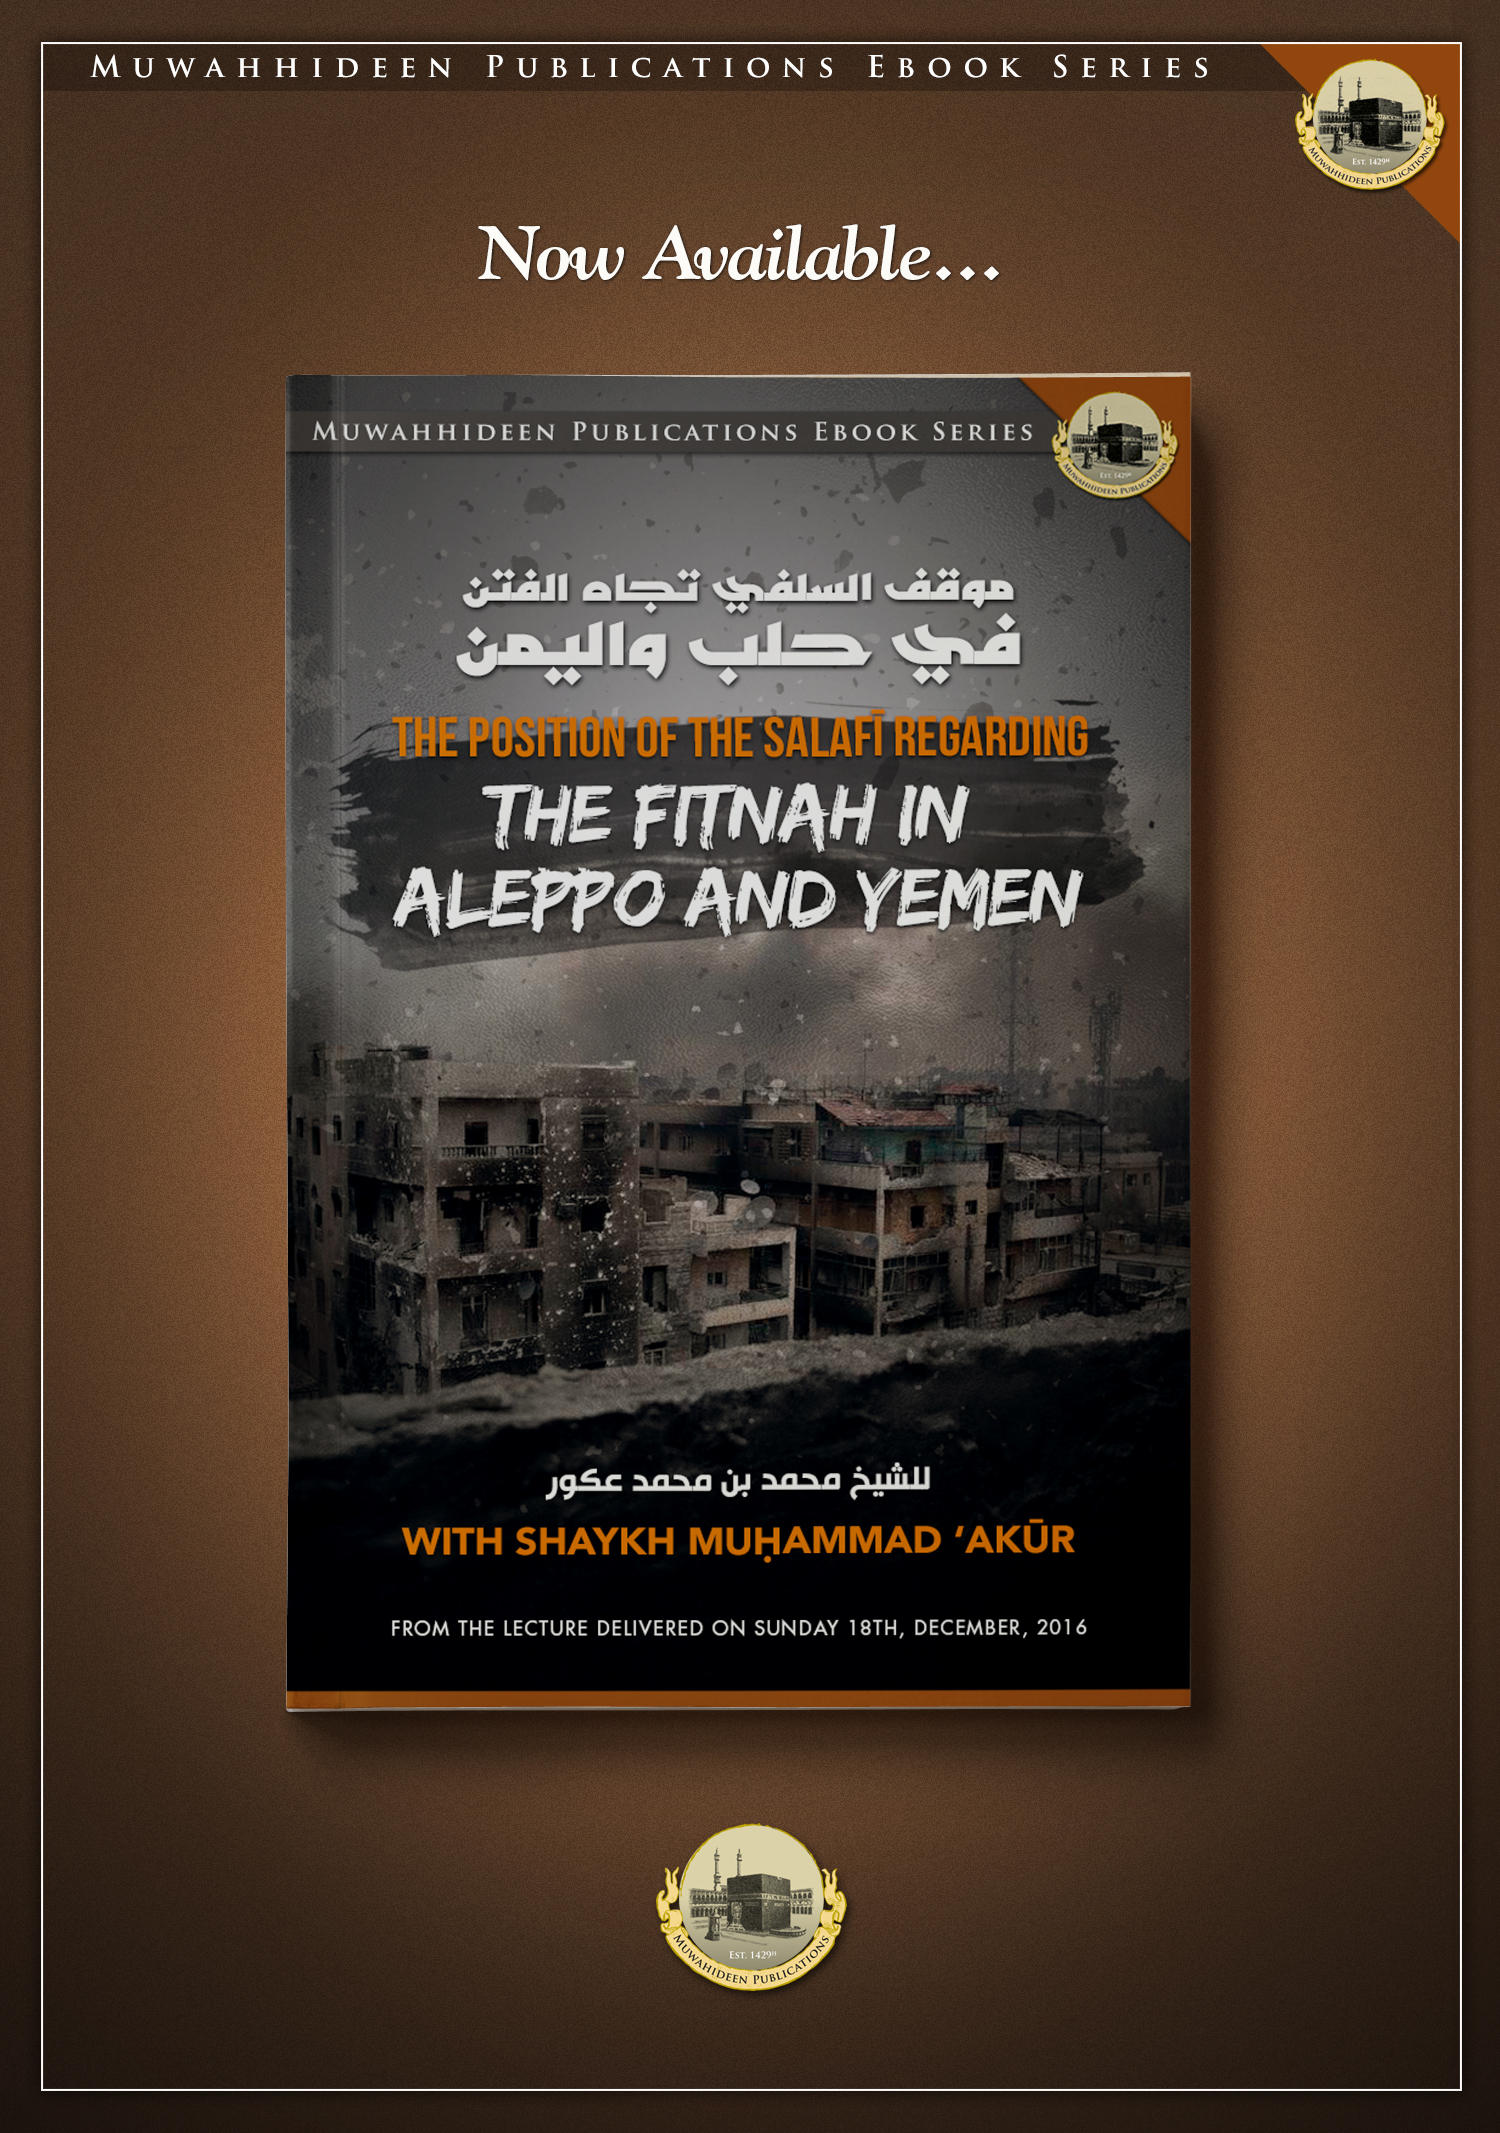 MUAK_EB_20161218_the_position_of_the_salafi_regarding_the_fitnah_in_aleppo_and_yemen_PROMO